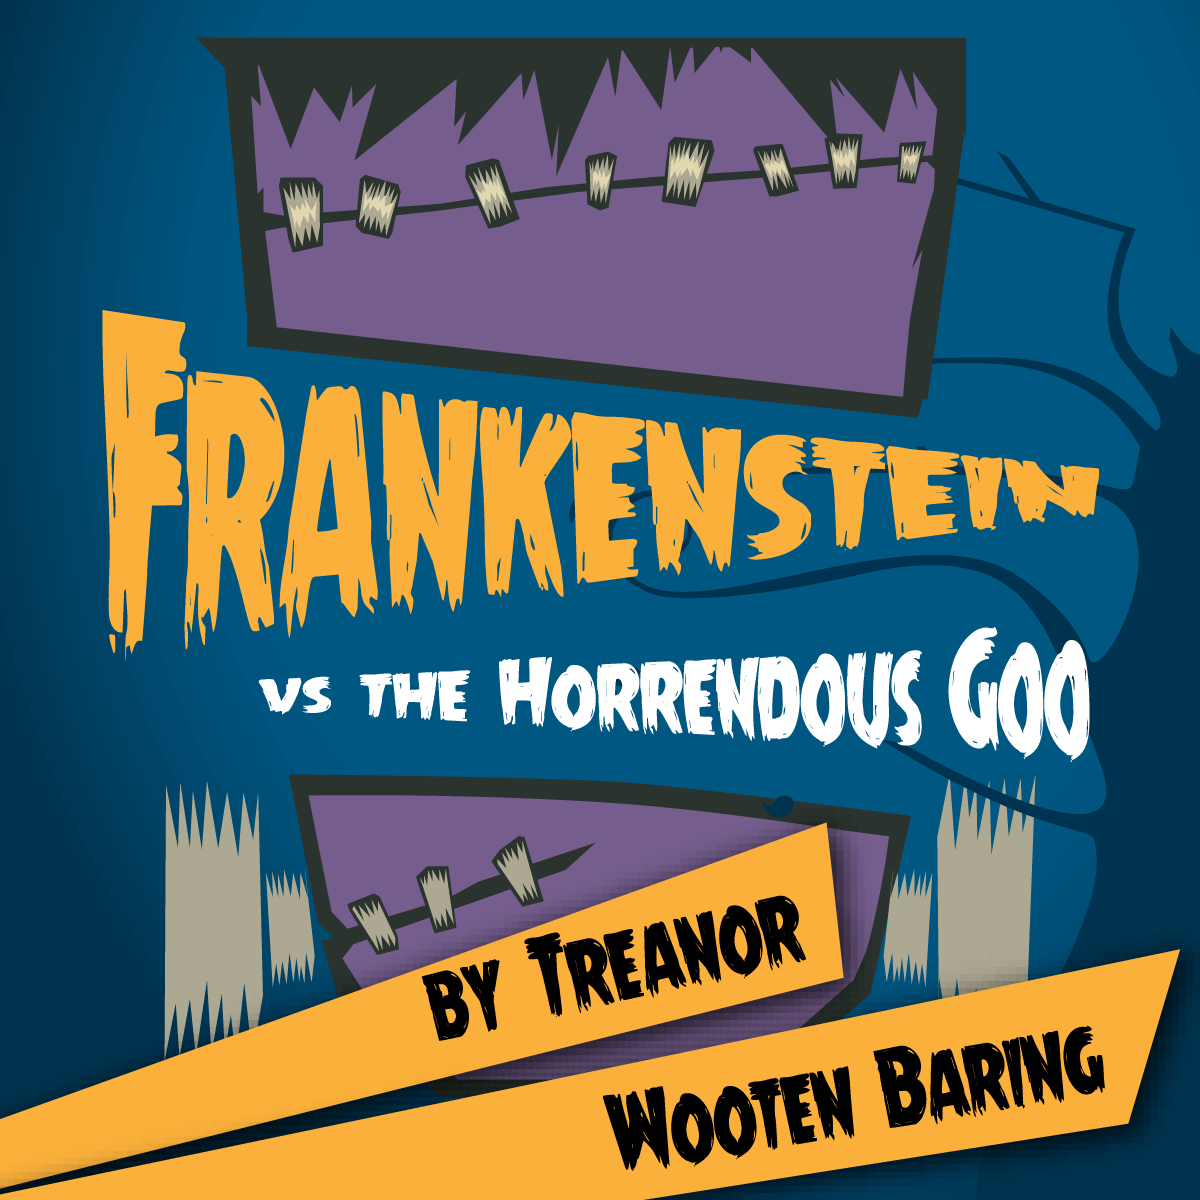 Frankenstein vs the Horrendous Goo